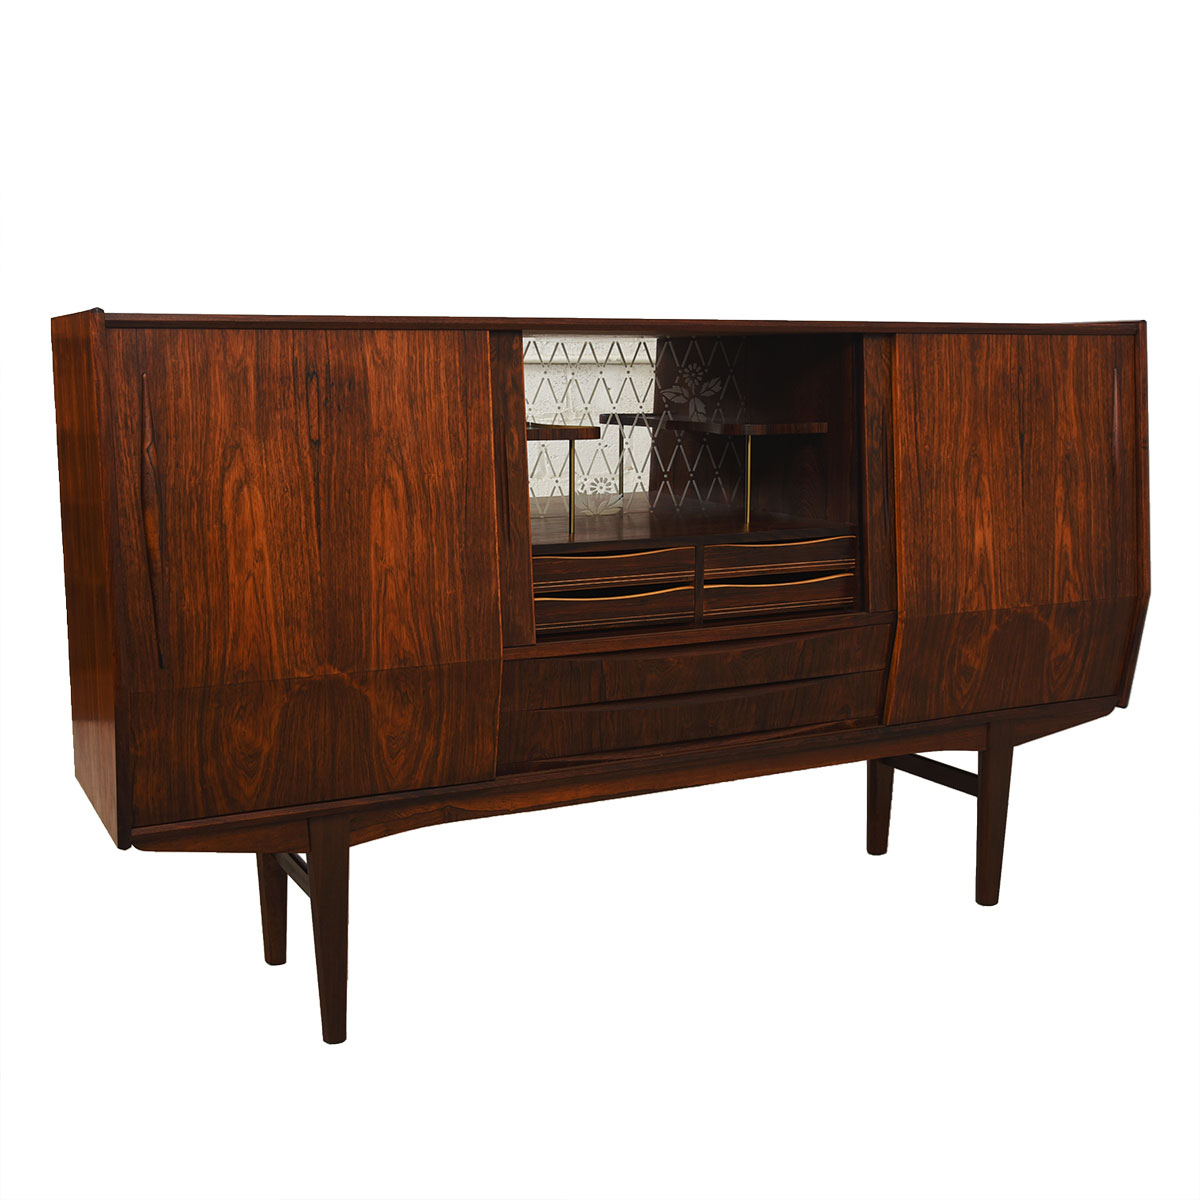 Danish Modern Rosewood Highboard / Bar Cabinet